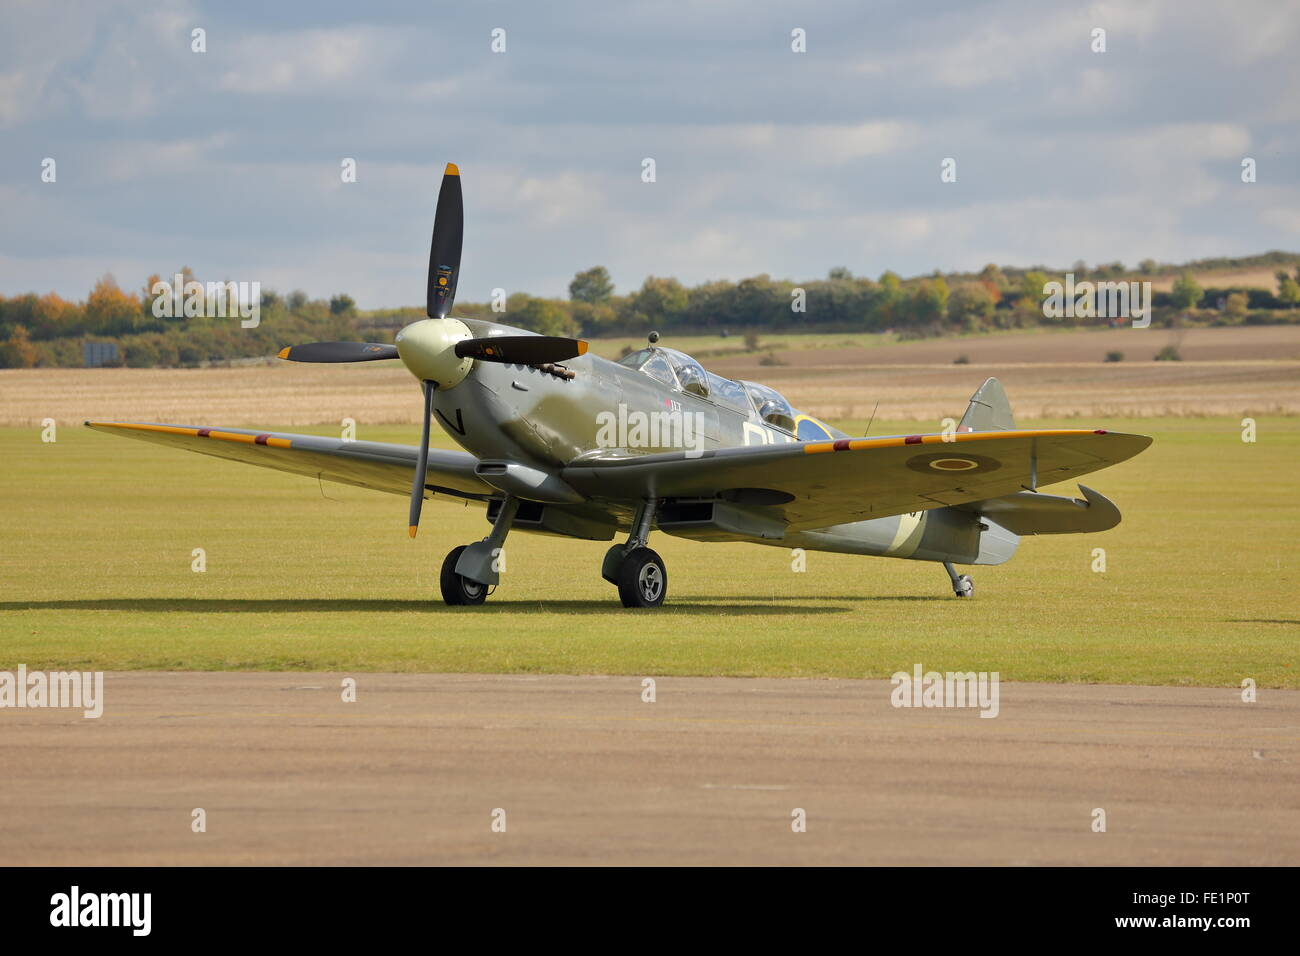 Two-seater Supermarine Spitfire at Duxford Air Show, Cambridge, UK - Stock Image